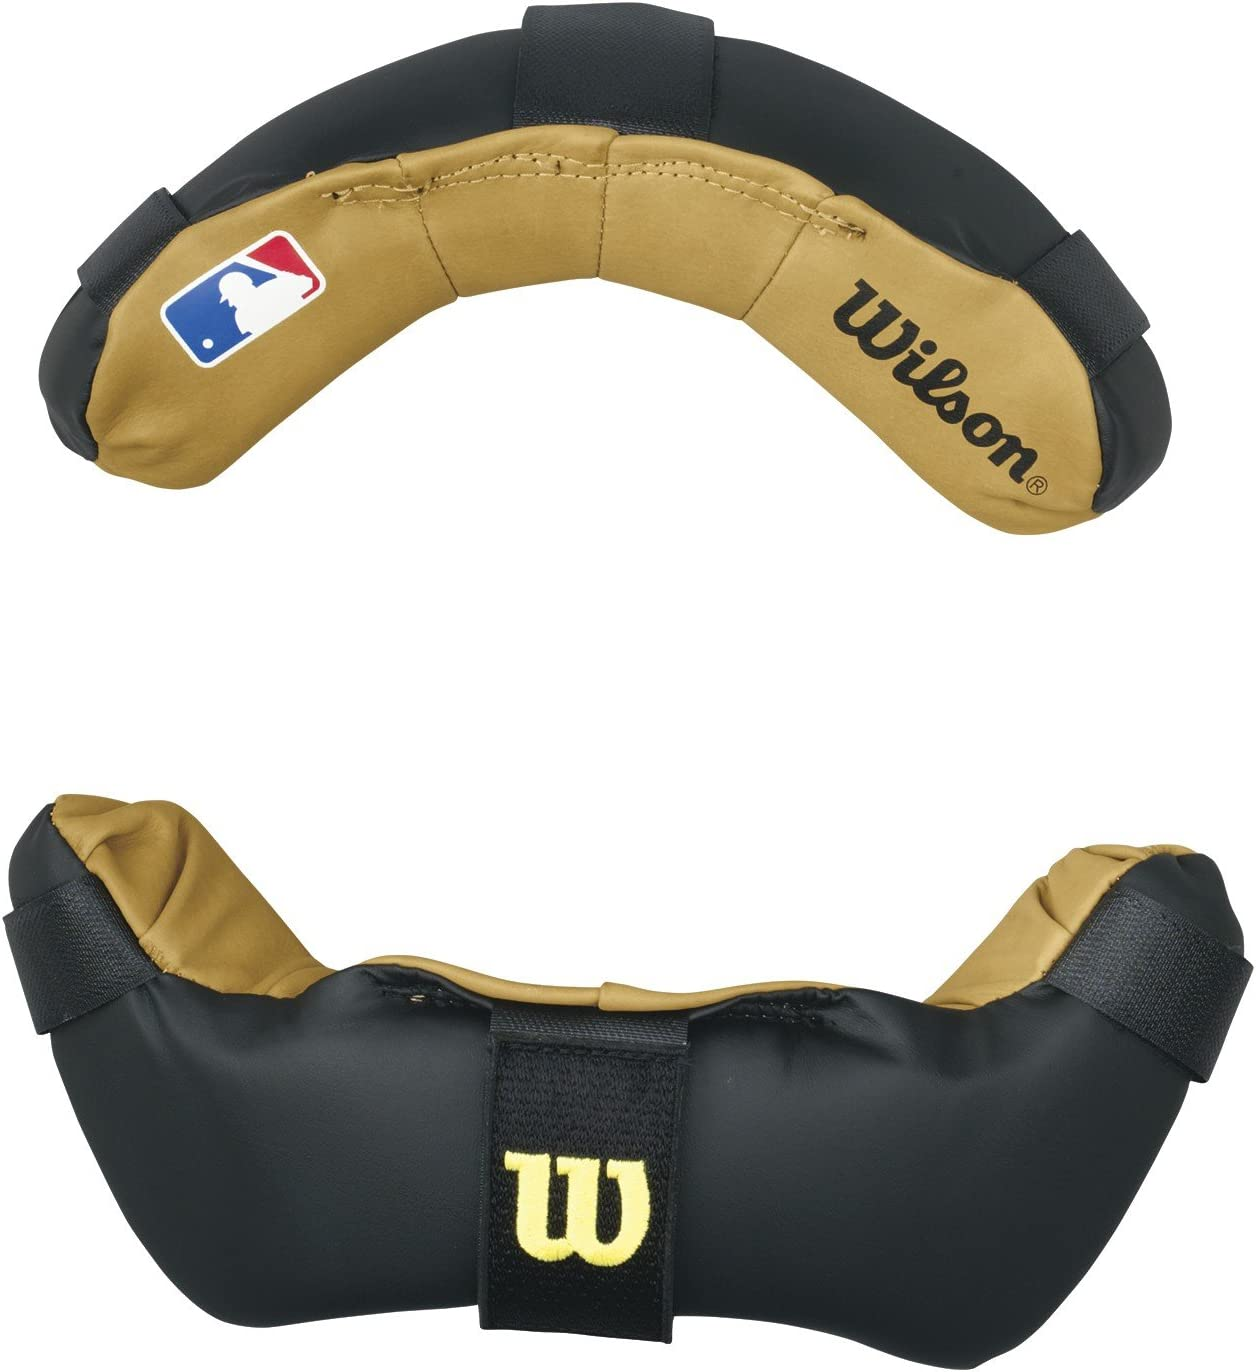 Wilson 3816 Non Be super welcome Wrap Around Replacement We OFFer at cheap prices Umpire Black Pads